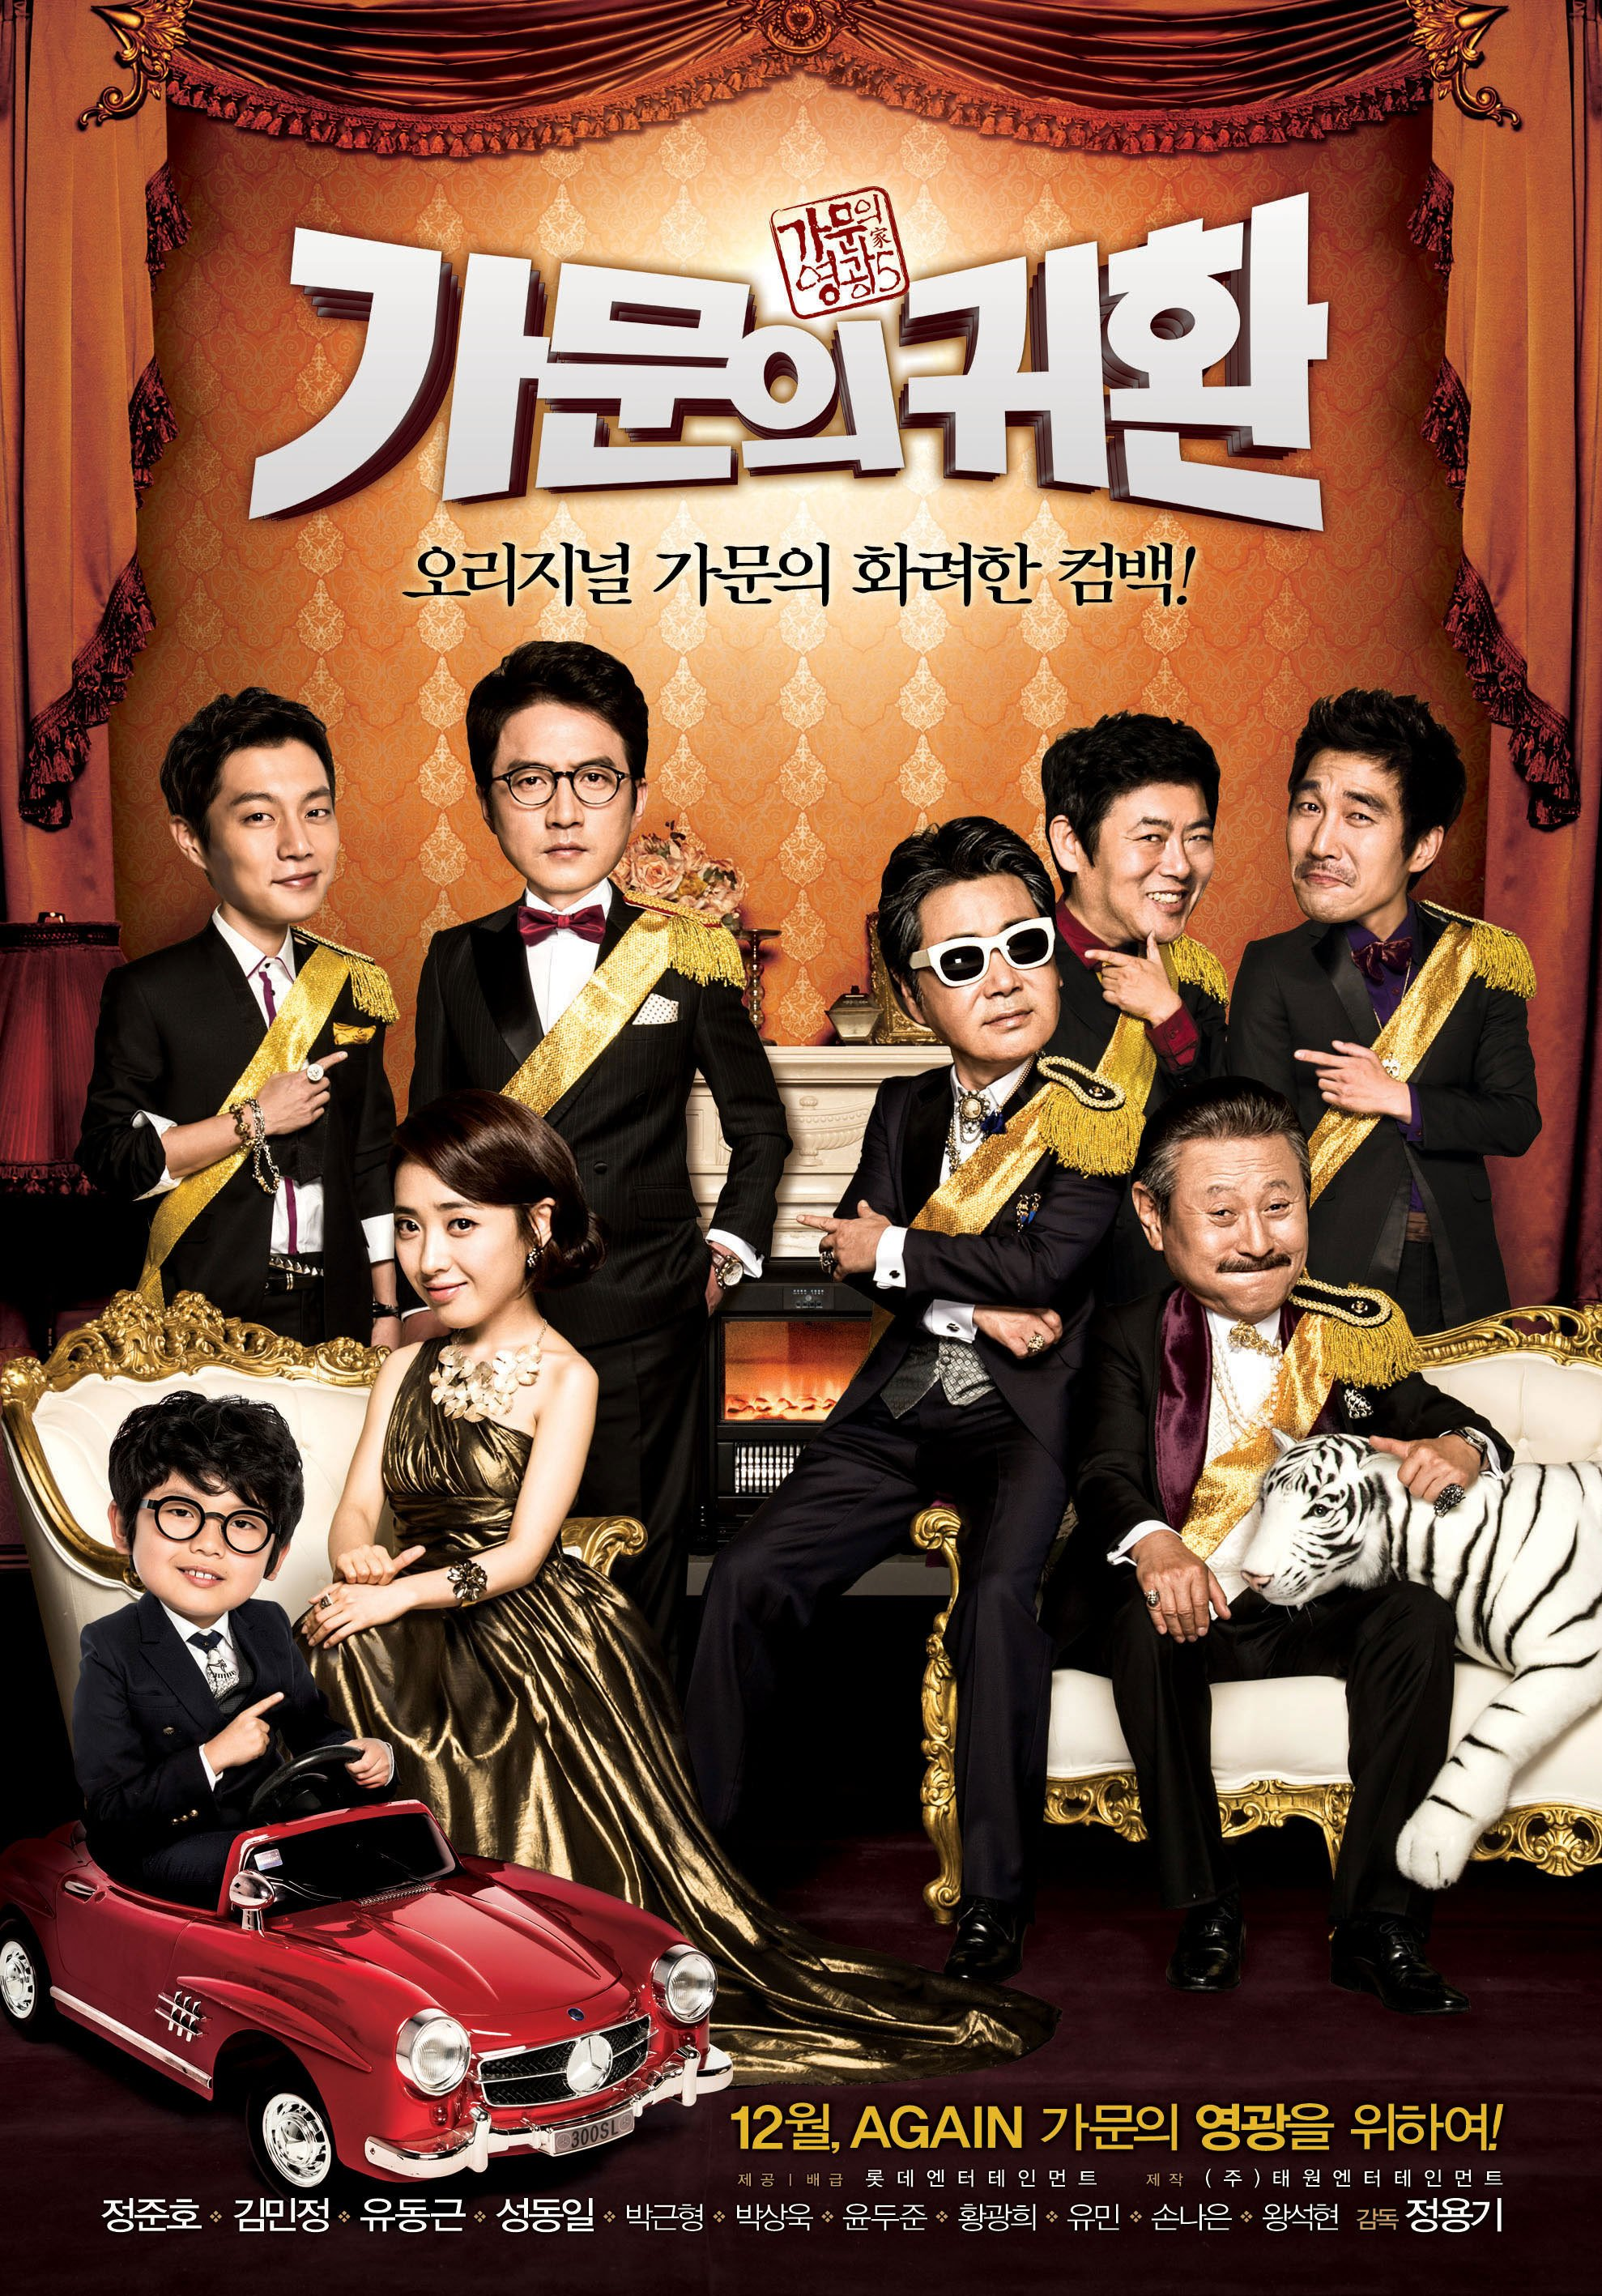 affiche du film Marrying the Mafia 5: Return of the Family